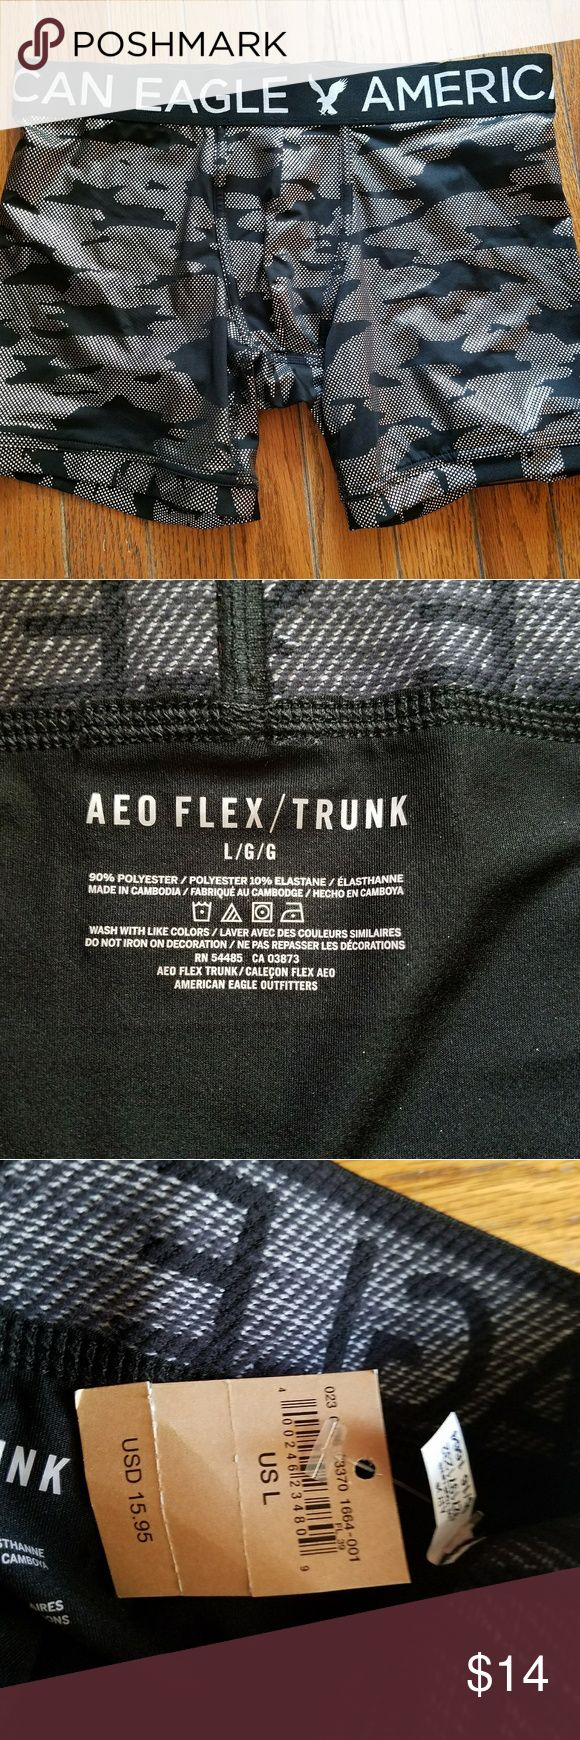 American Eagle Flex Trunk Flex Trunk underwear has silky material. Does NOT have front flap. American Eagle Outfitters Underwear & Socks